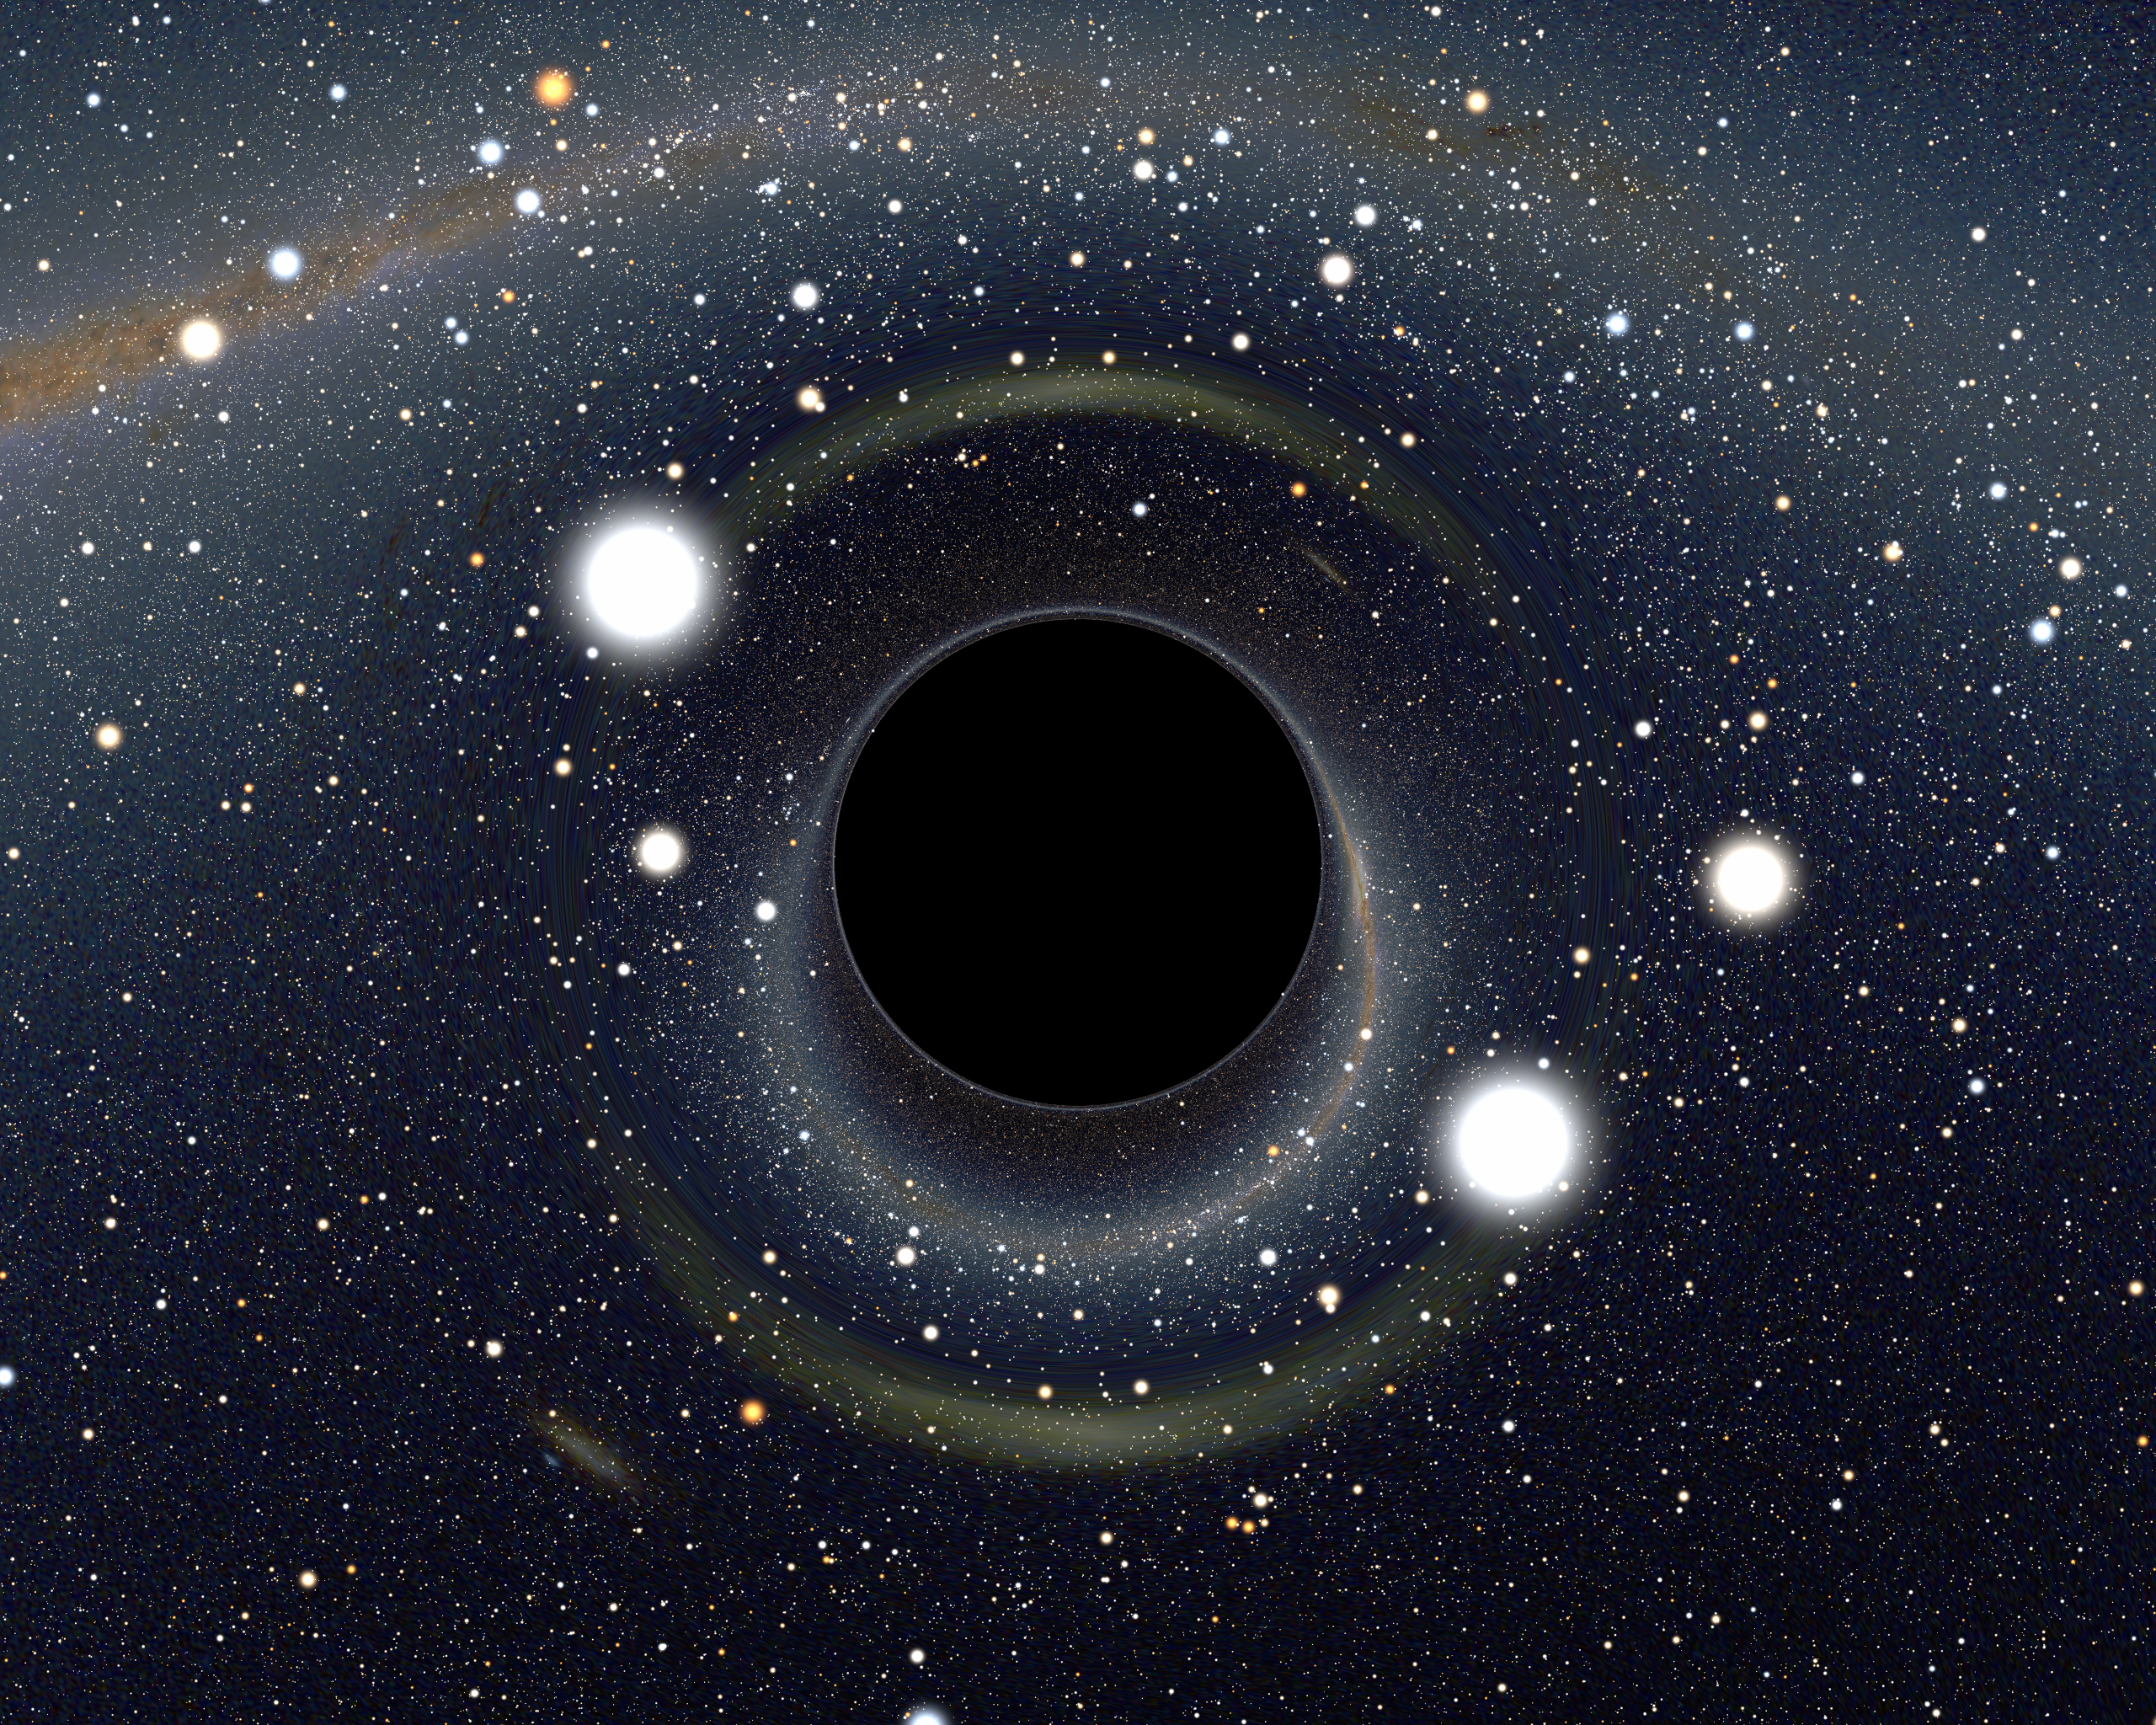 APOD: 2014 October 26 - Too Close to a Black Hole